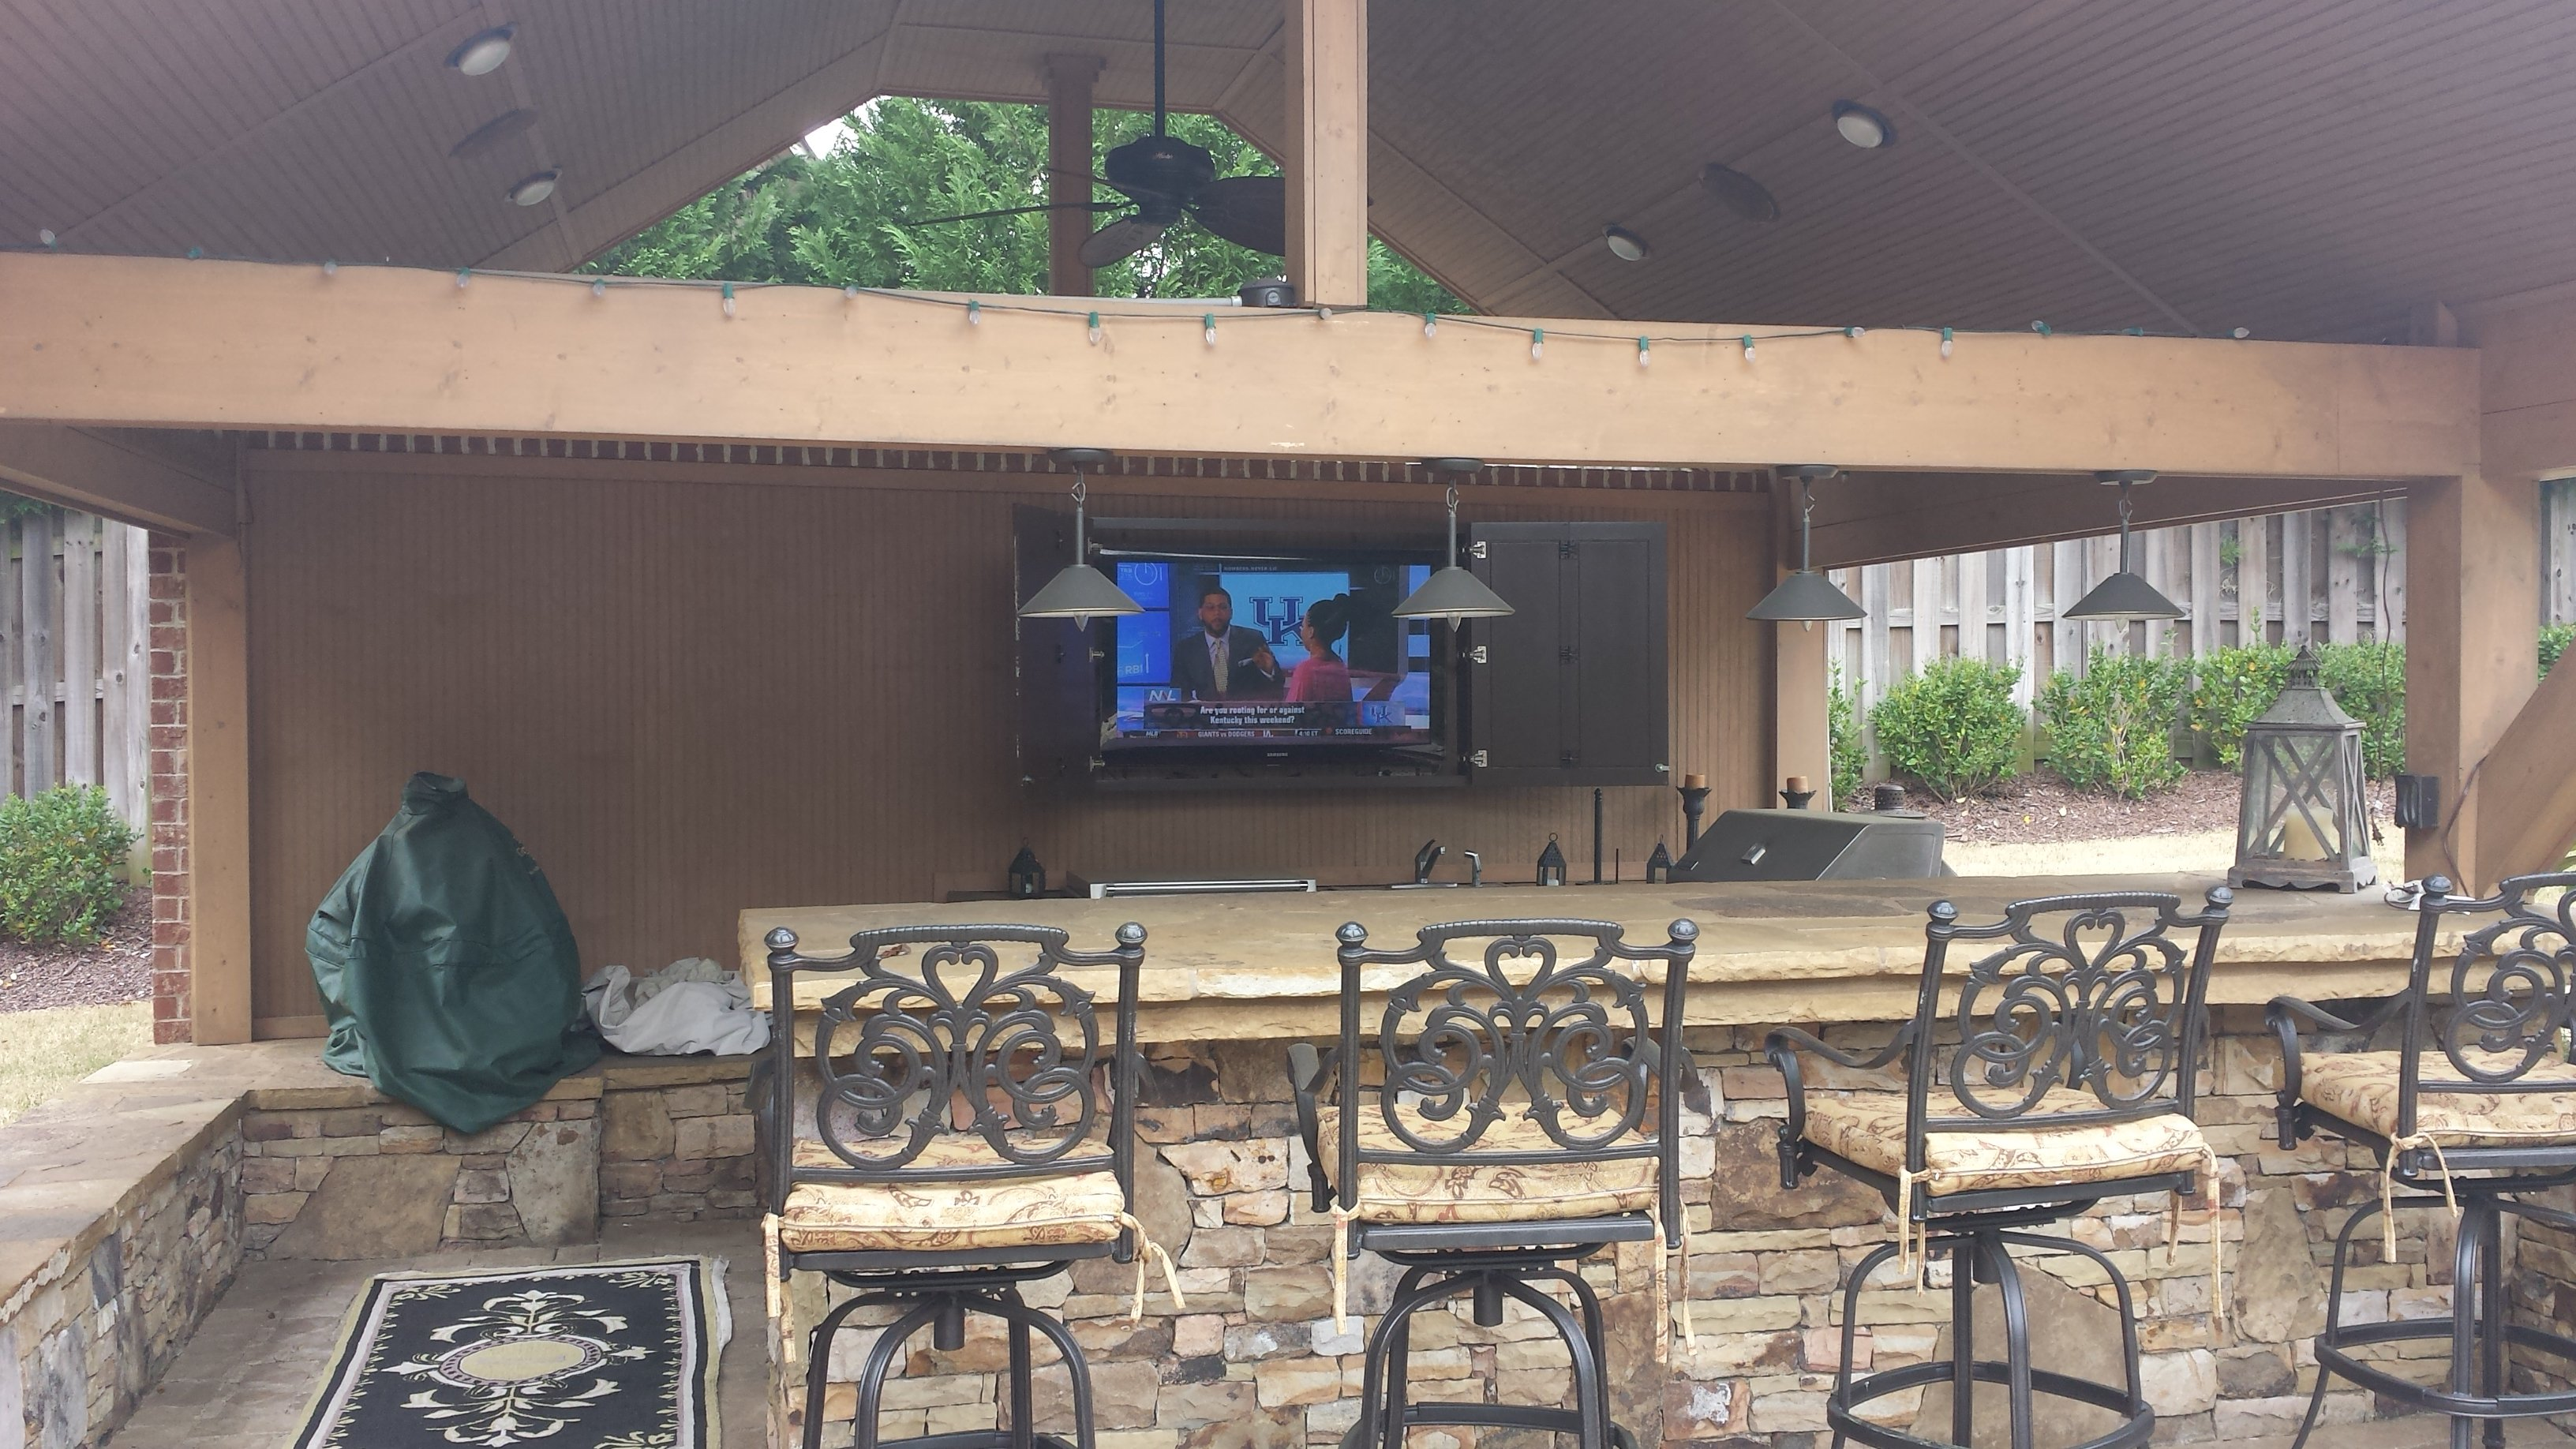 Flat Panel Installs Home Theater Services In Atlanta Smart House Wiring For Tv Consultation Making The Right Choice Easy Do You Want Your New Mounted Over Fireplace Or A Weather Proof Connected Outdoor